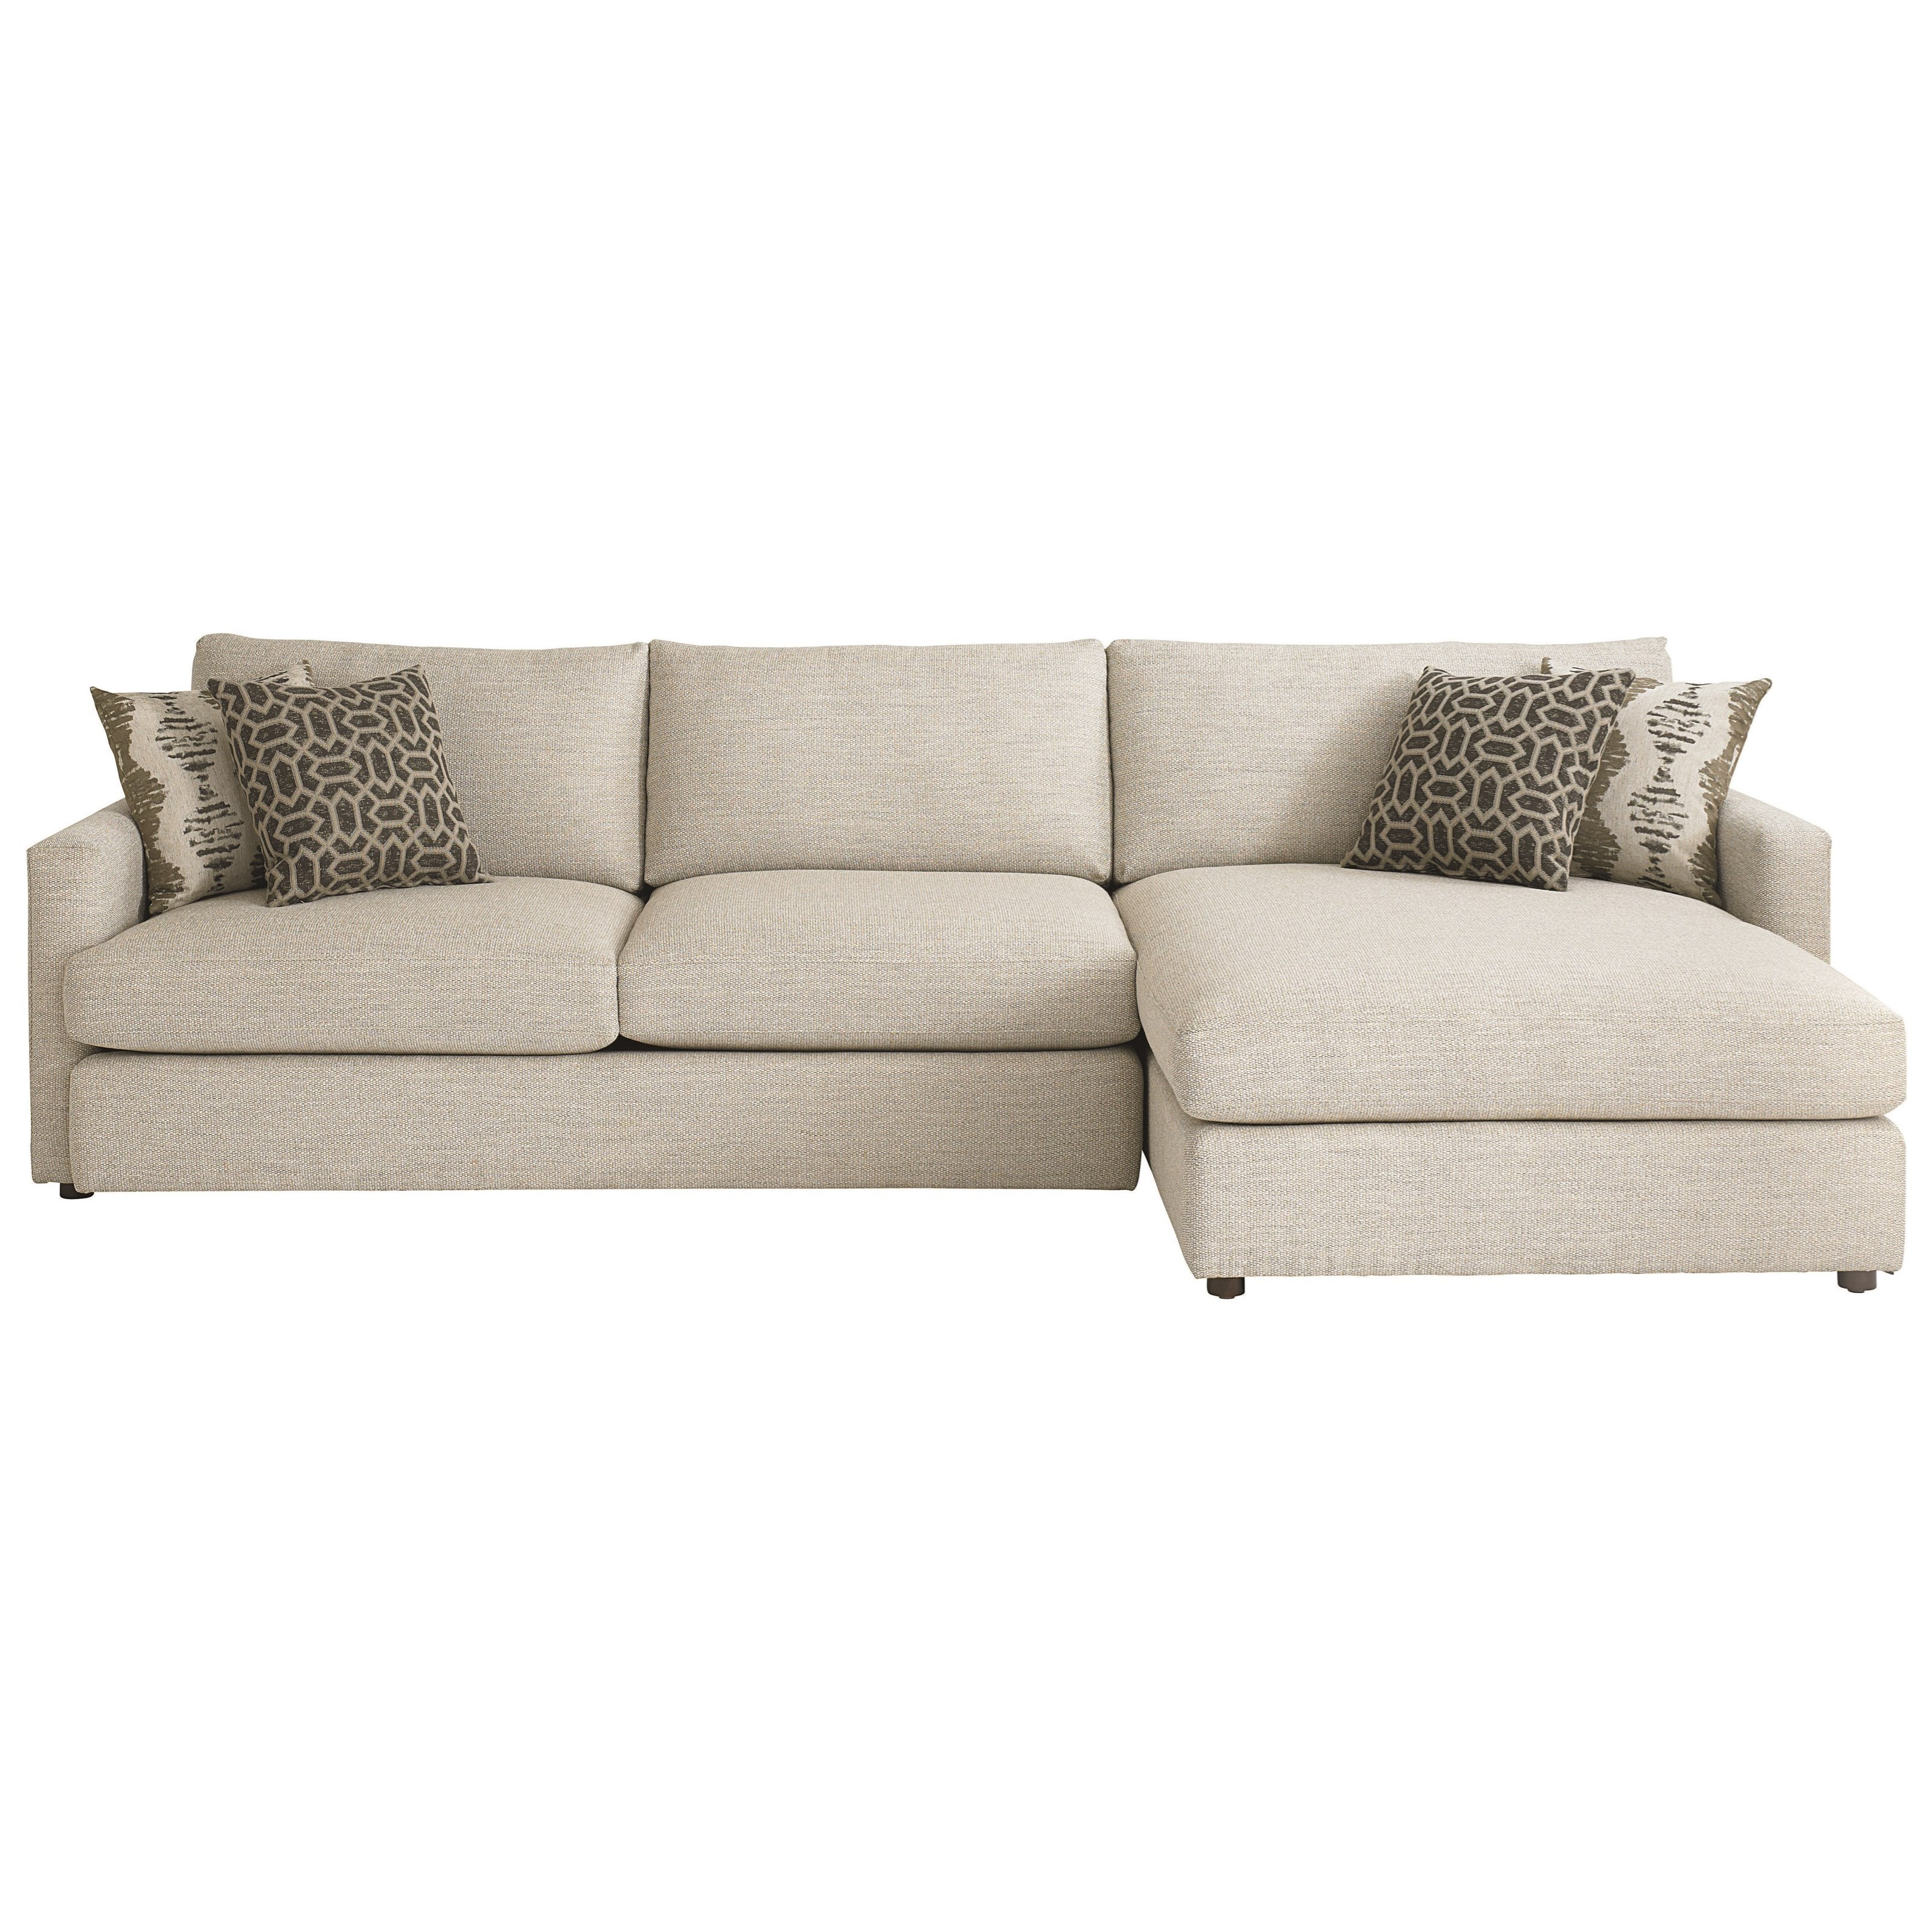 Allure Sectional with Right Arm Facing Chaise by Bassett at Bassett of Cool Springs